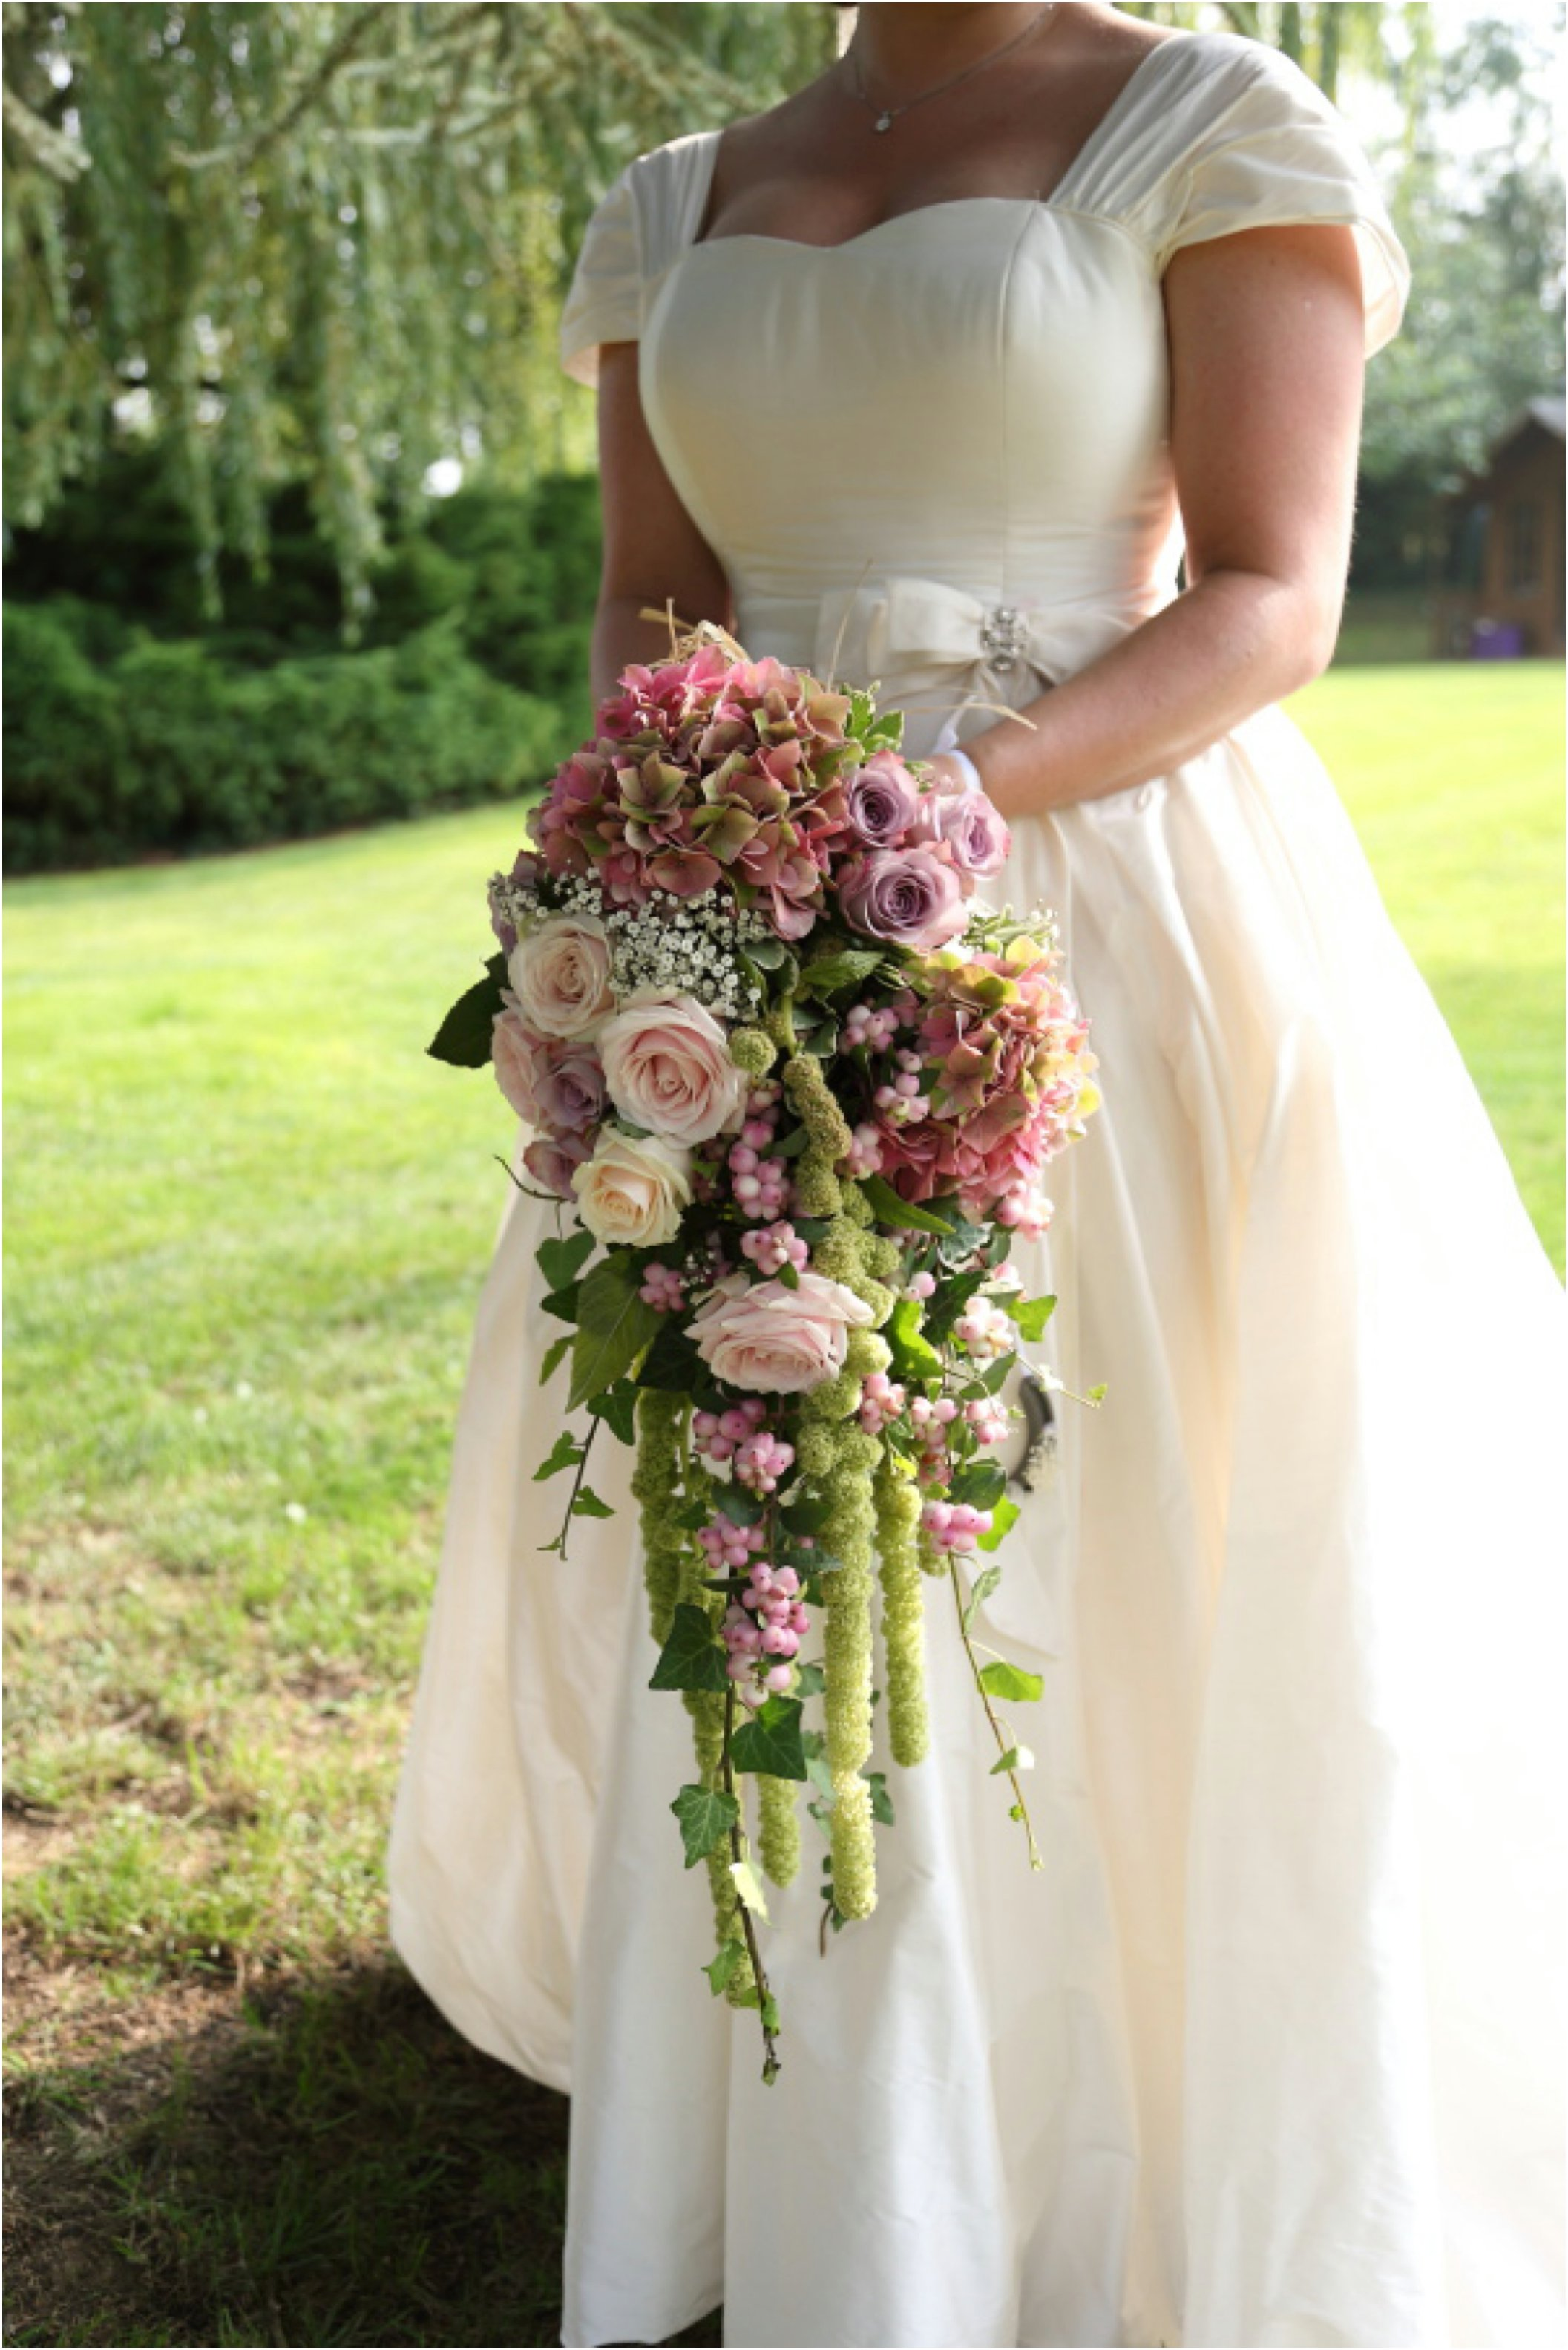 beautiful waterfall bouquet at essex wedding - click through for more images